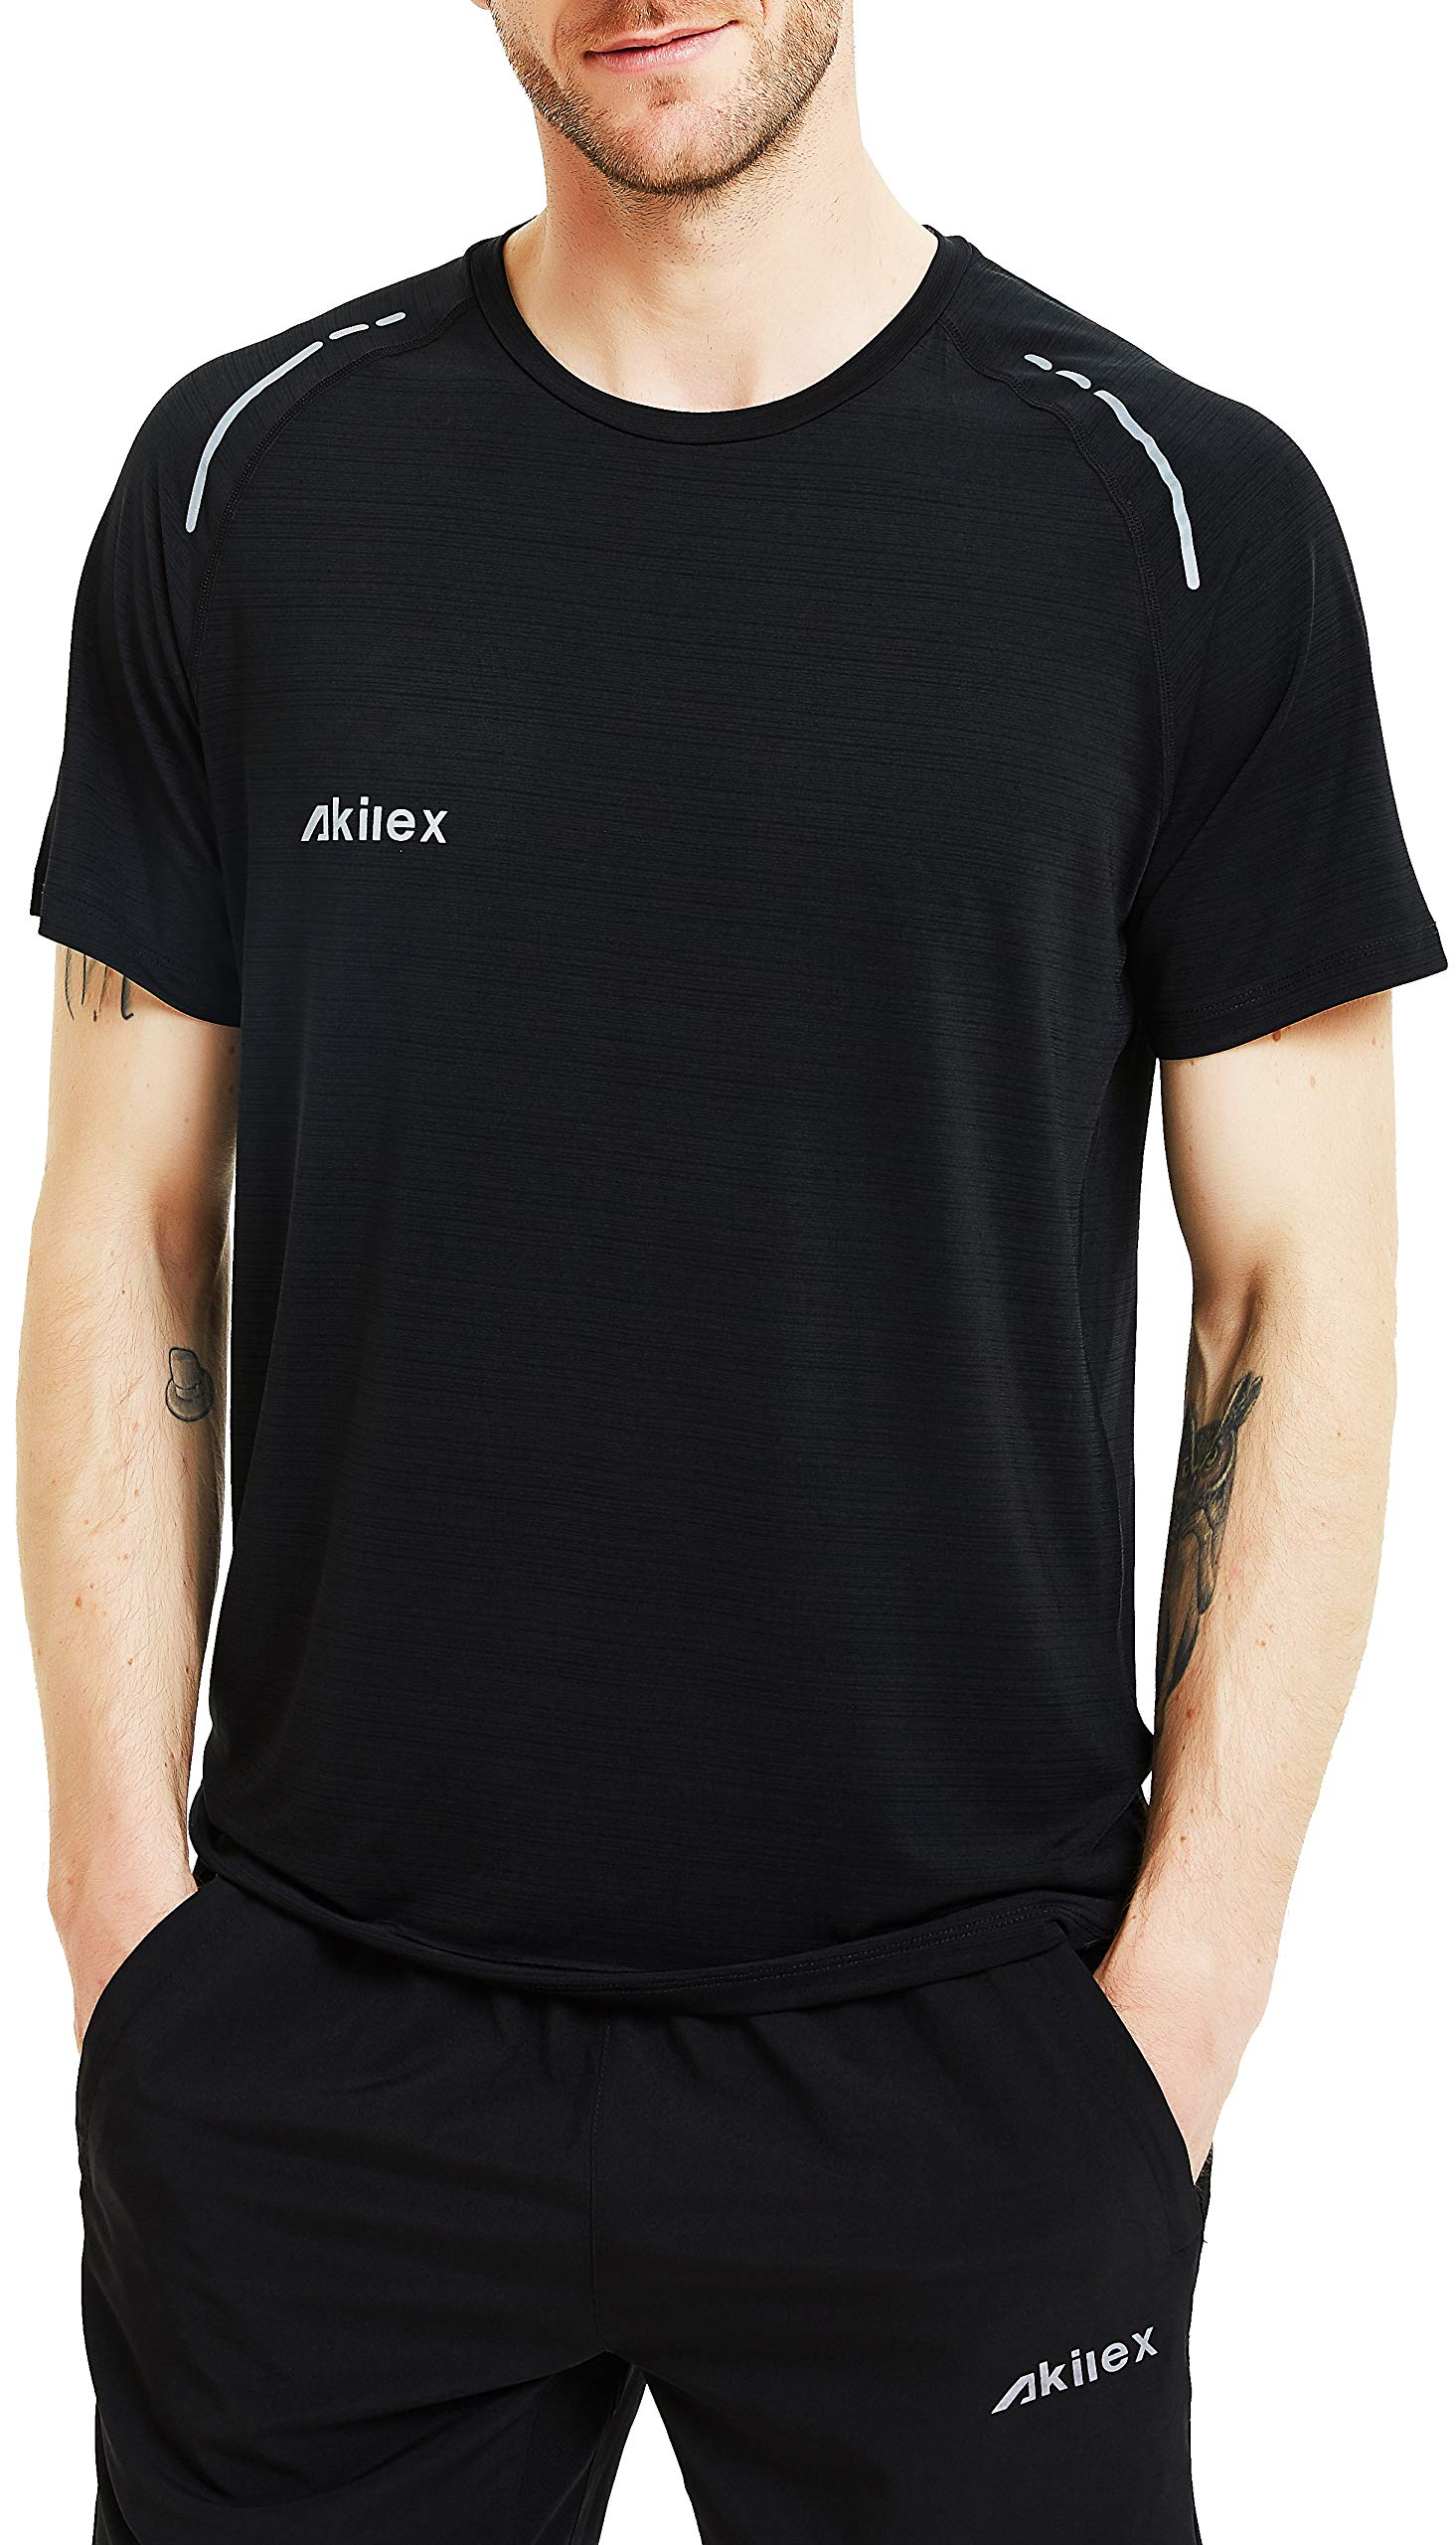 Akilex Mens Running Dry Fit T-Shirt Athletic Outdoor Short Sleeve Comfortable Sports Top